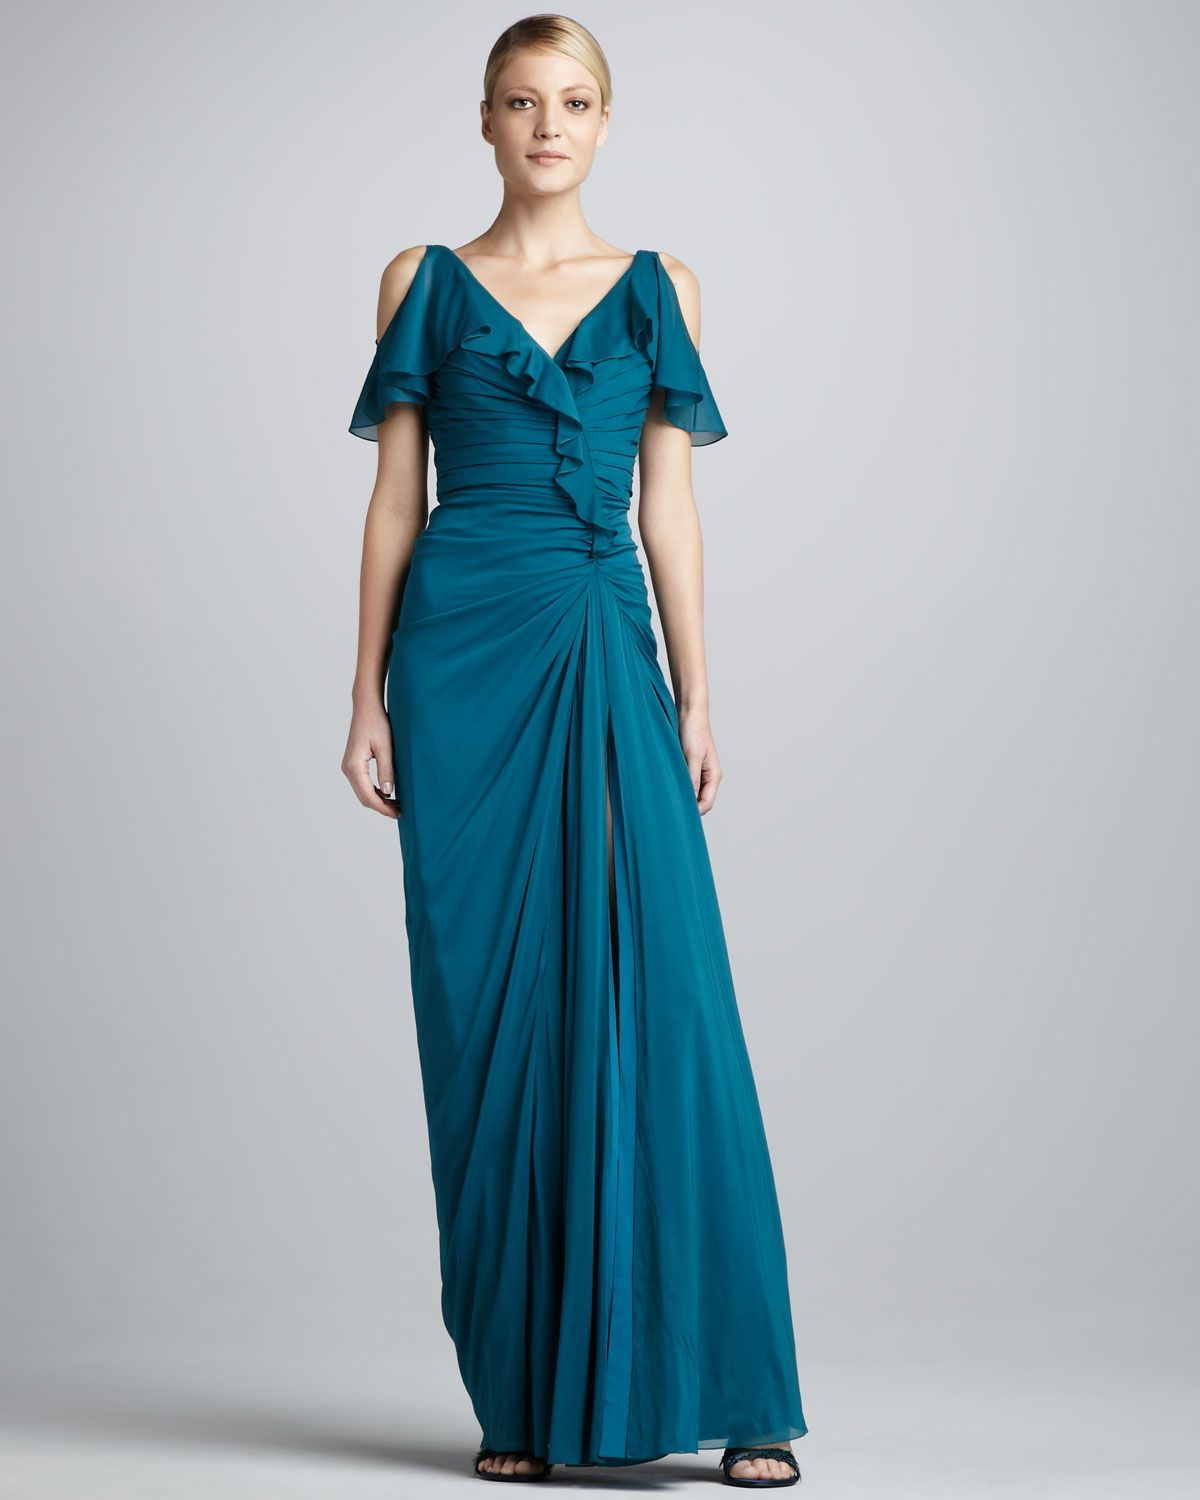 http://ncrni.com/badgley-mischka-ruffled-coldshoulder-gown-p-1930 ...